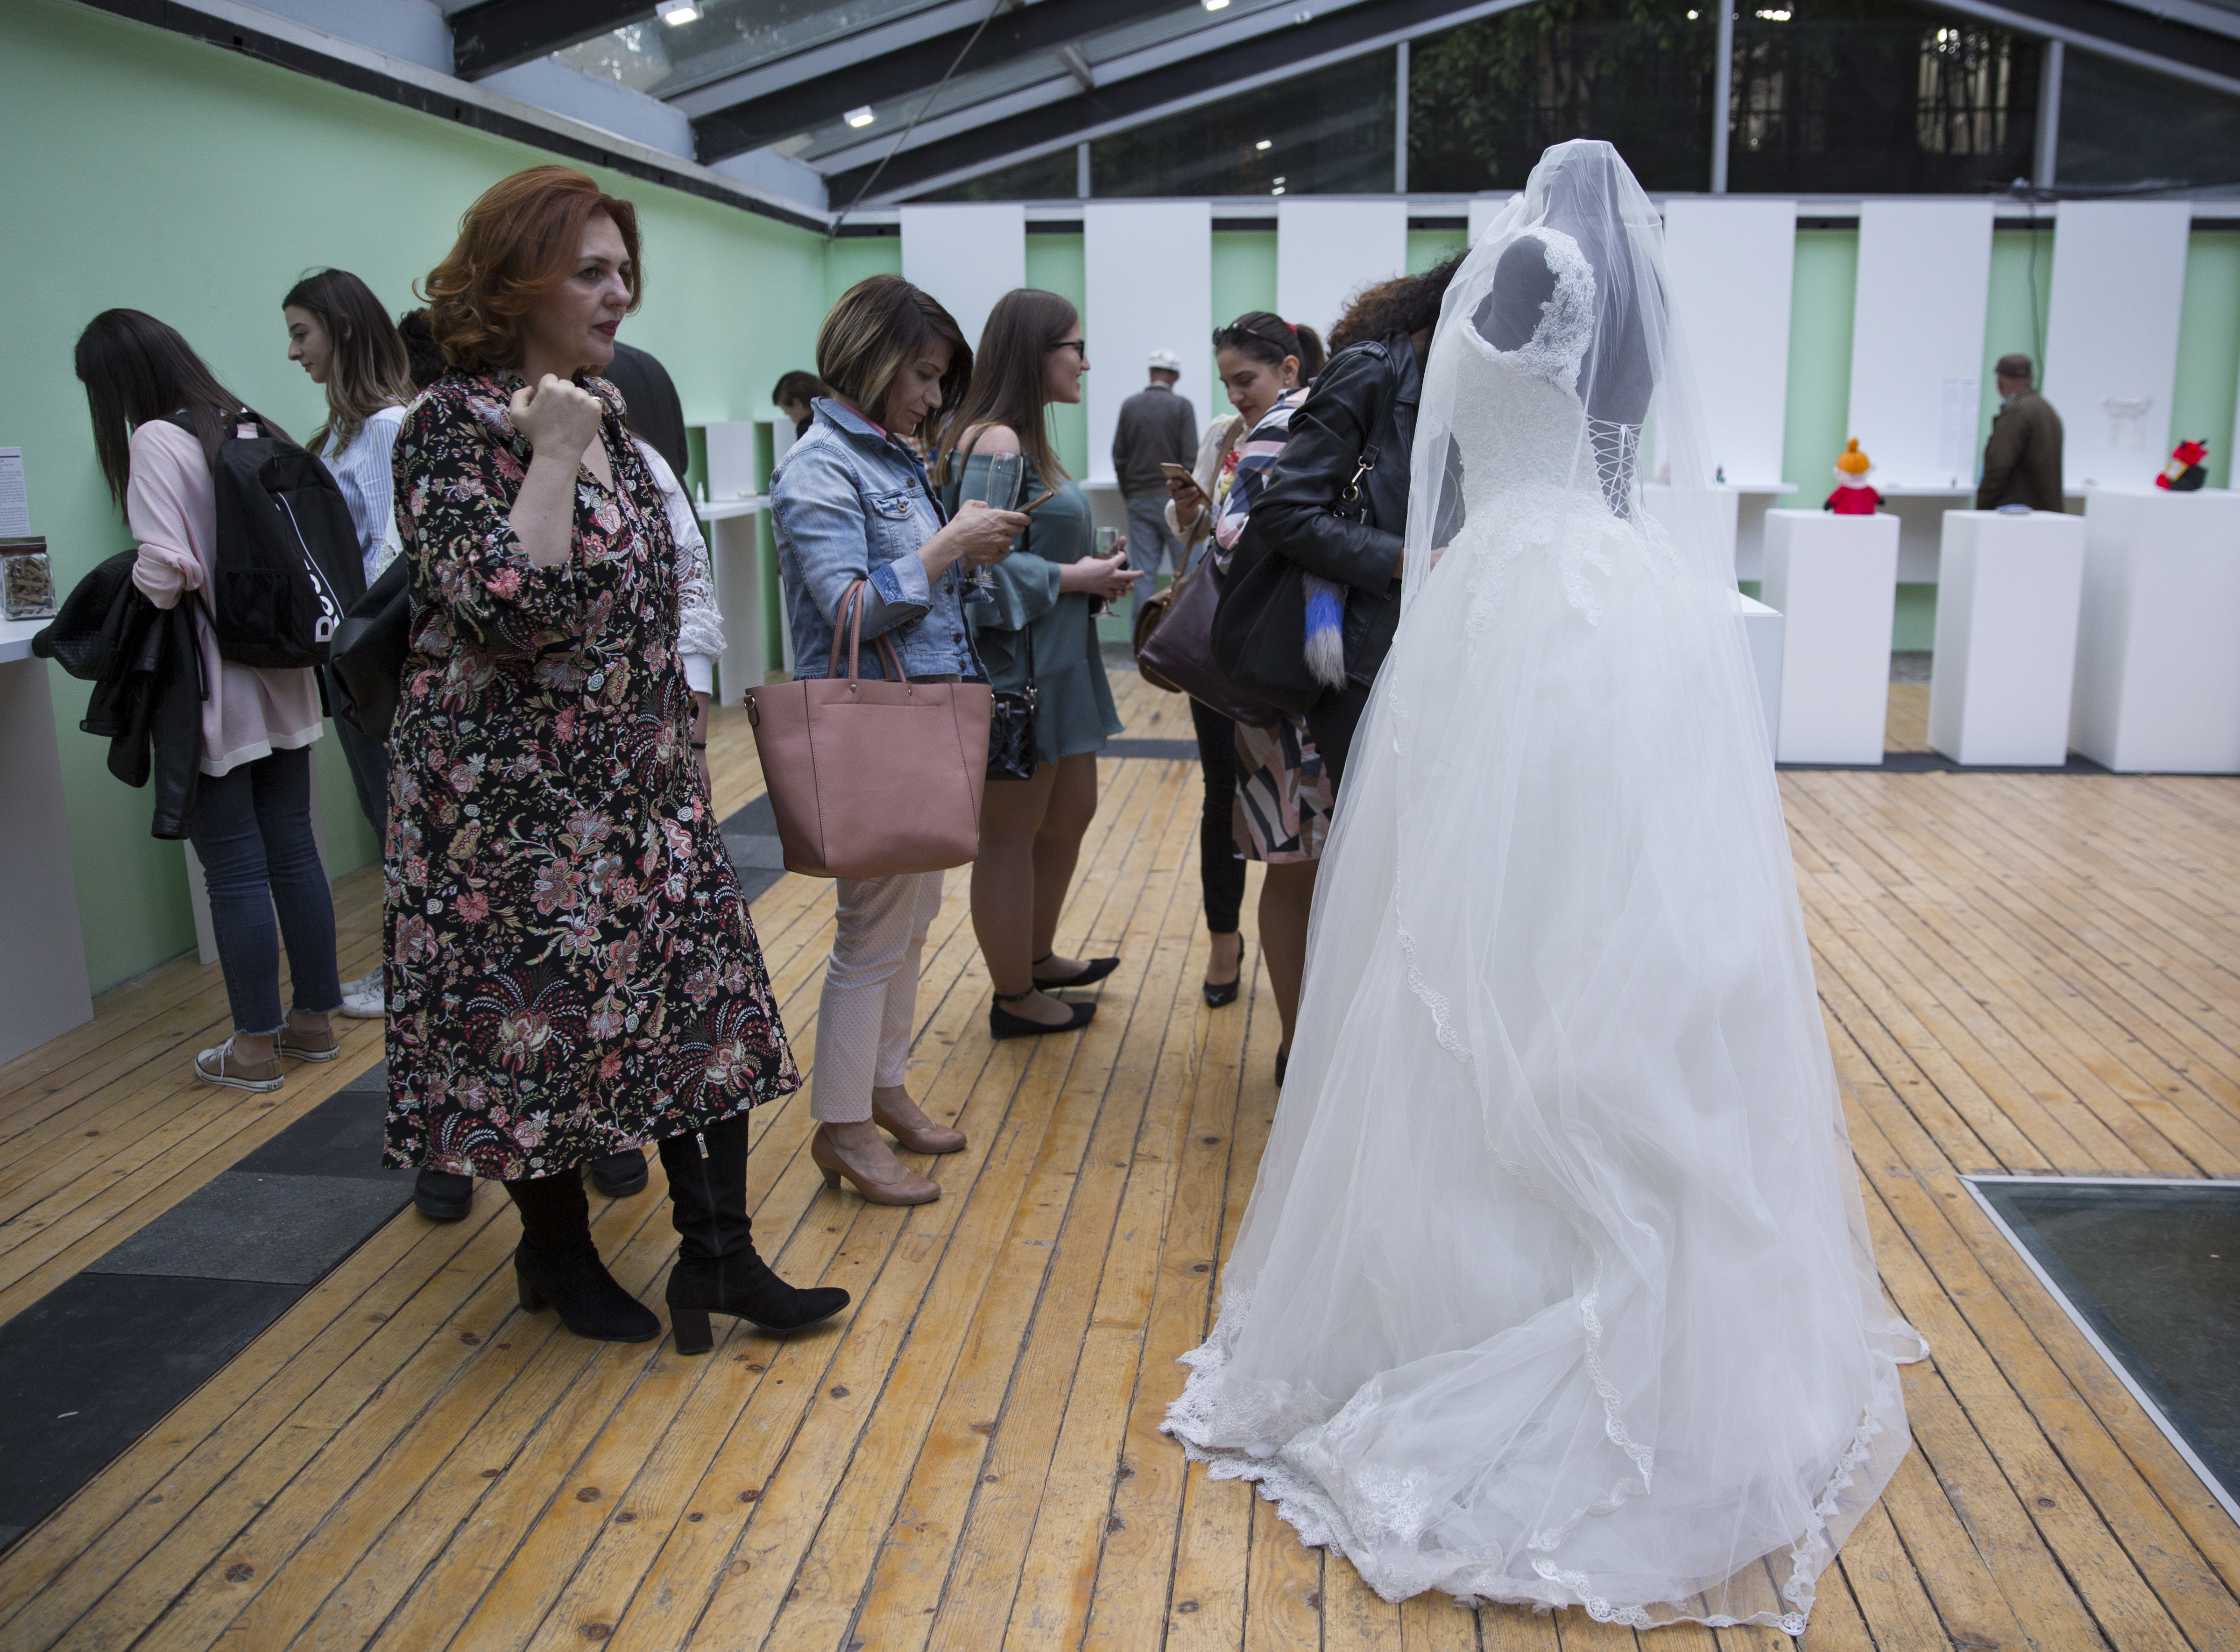 A visitor looks at a wedding dress displayed at the Museum of Broken Relationships in Pristina, Kosovo,May 3, 2018. The dress belongs to a Turkish woman who lost her husband-to-be the day they would get married, June 28, 2016, when a terrorist attack...